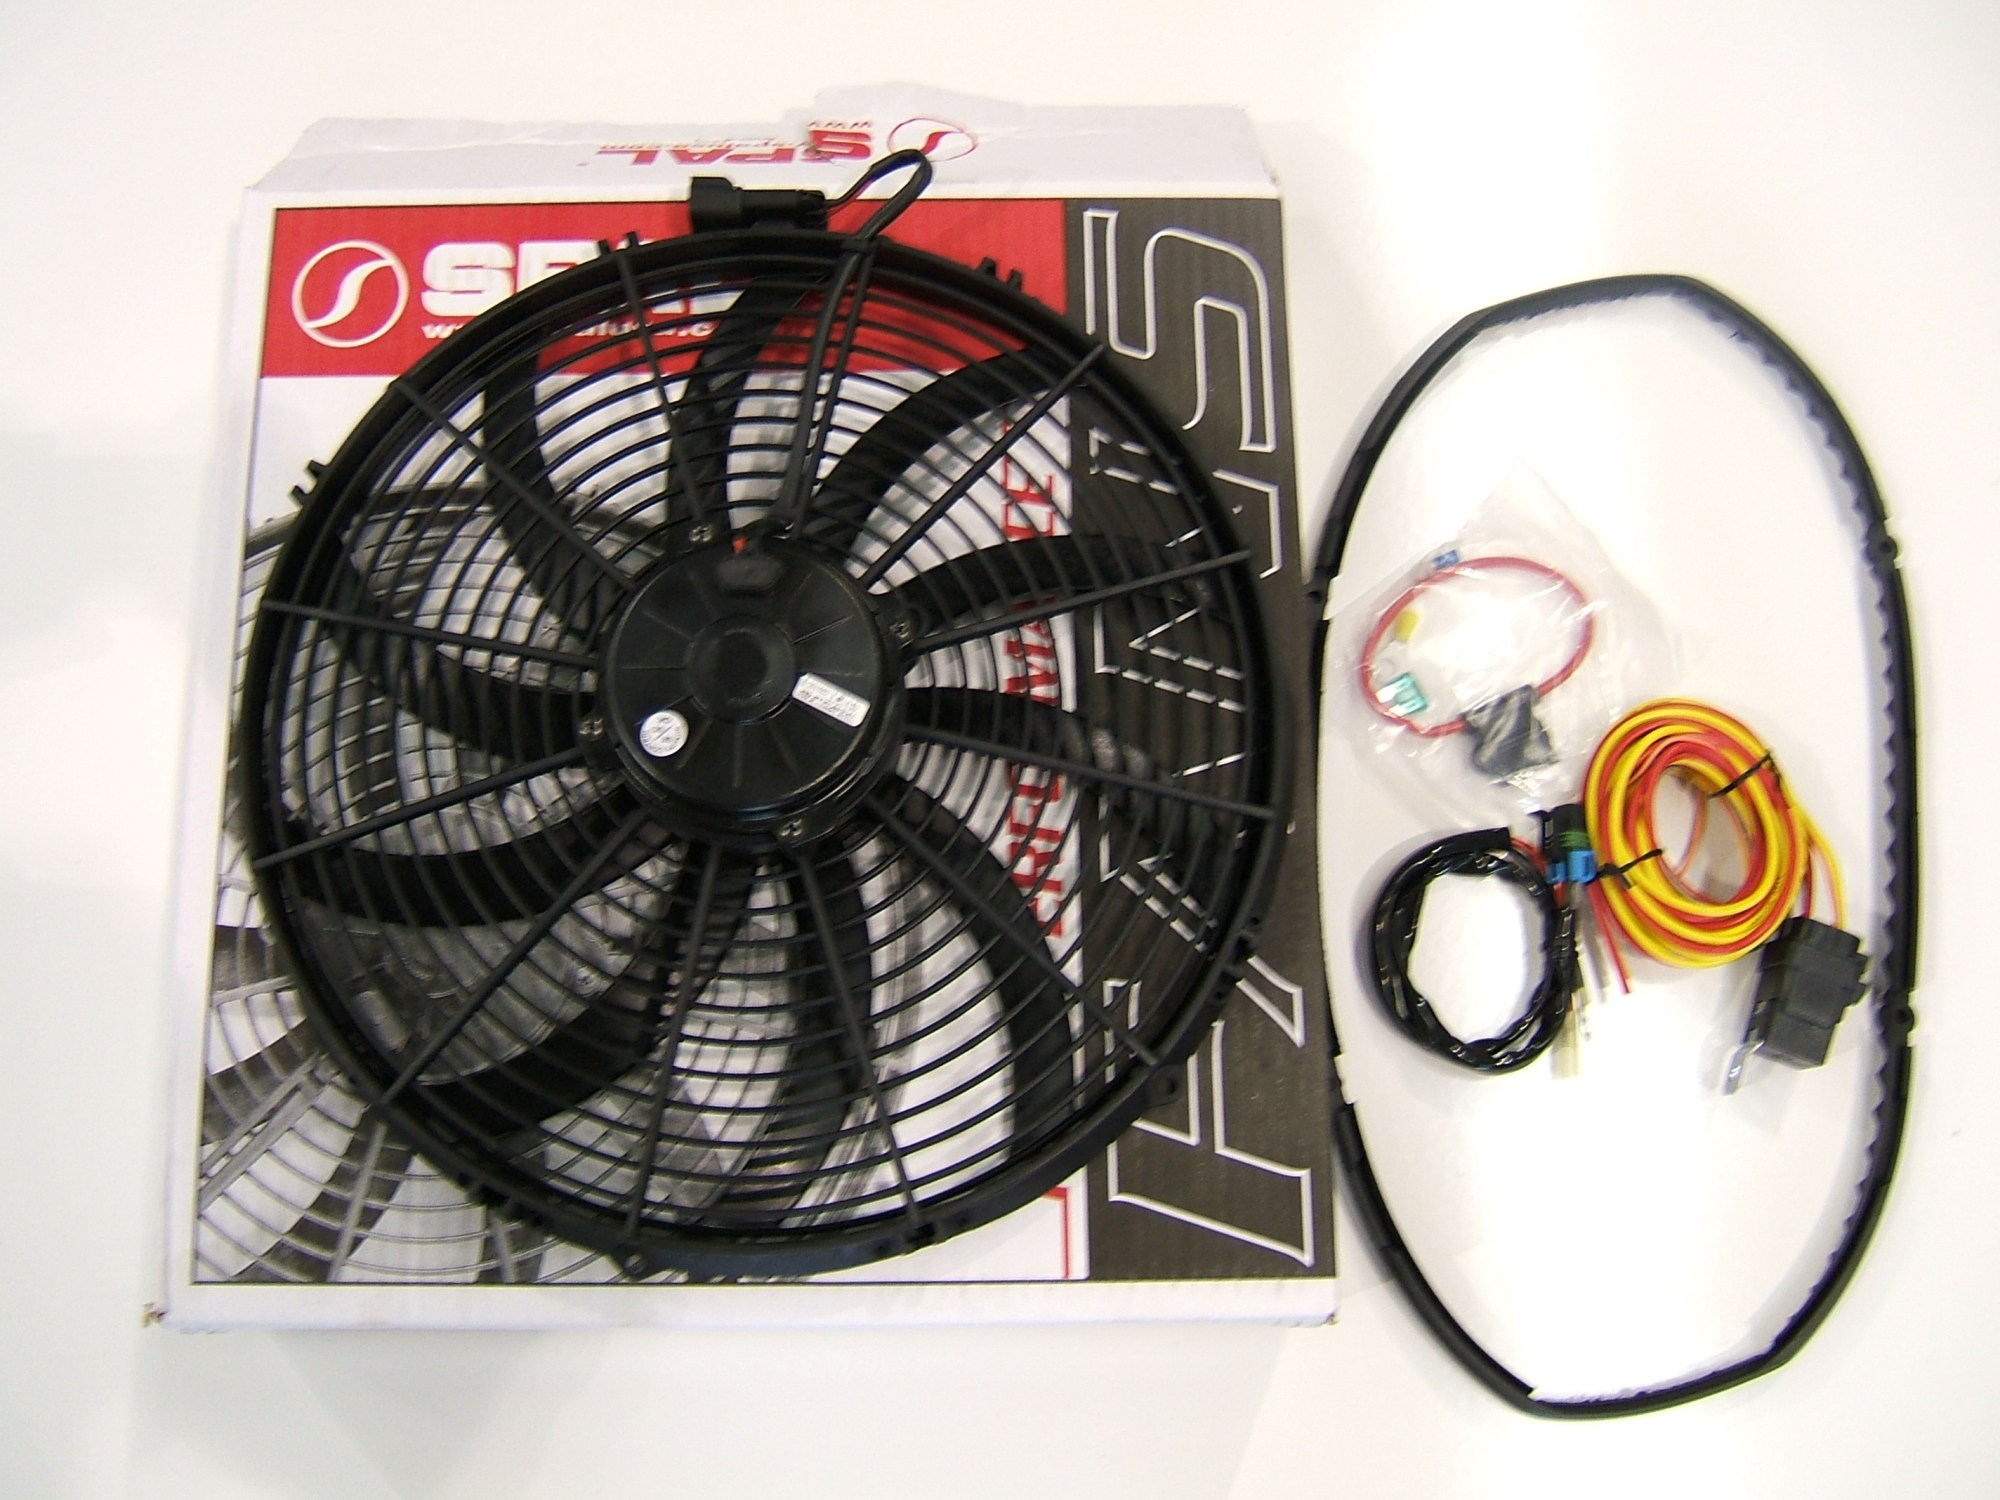 hight resolution of z1 motorsports spal electric fan setups flow over 3300 m3 hr at static pressure an electrically driven fan reduces parasitic losses associated with